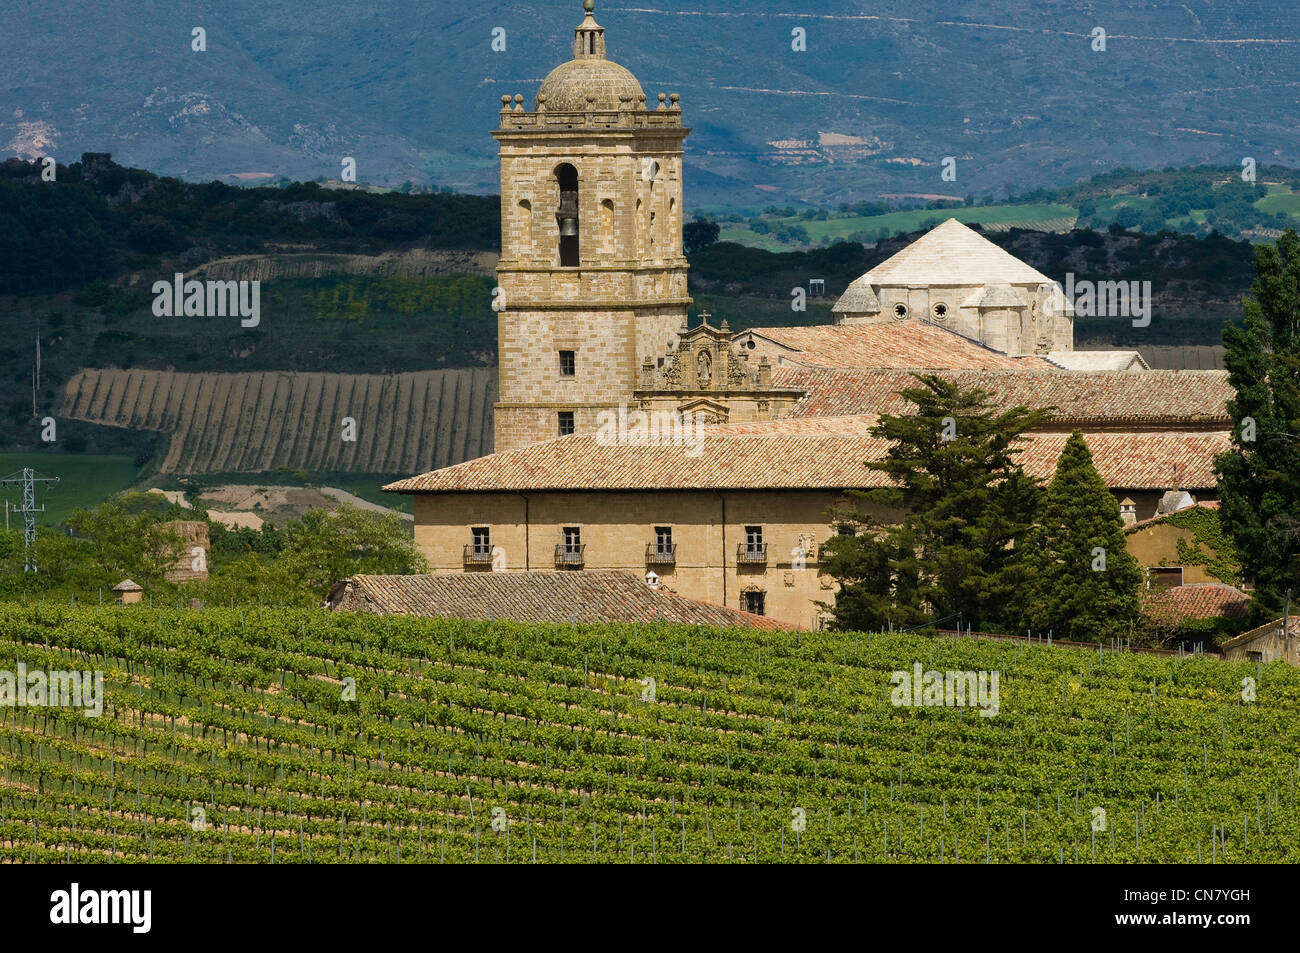 Spain, Navarra, Irache, the monastery dated 11th century, amidst the Irache vineyard - Stock Image